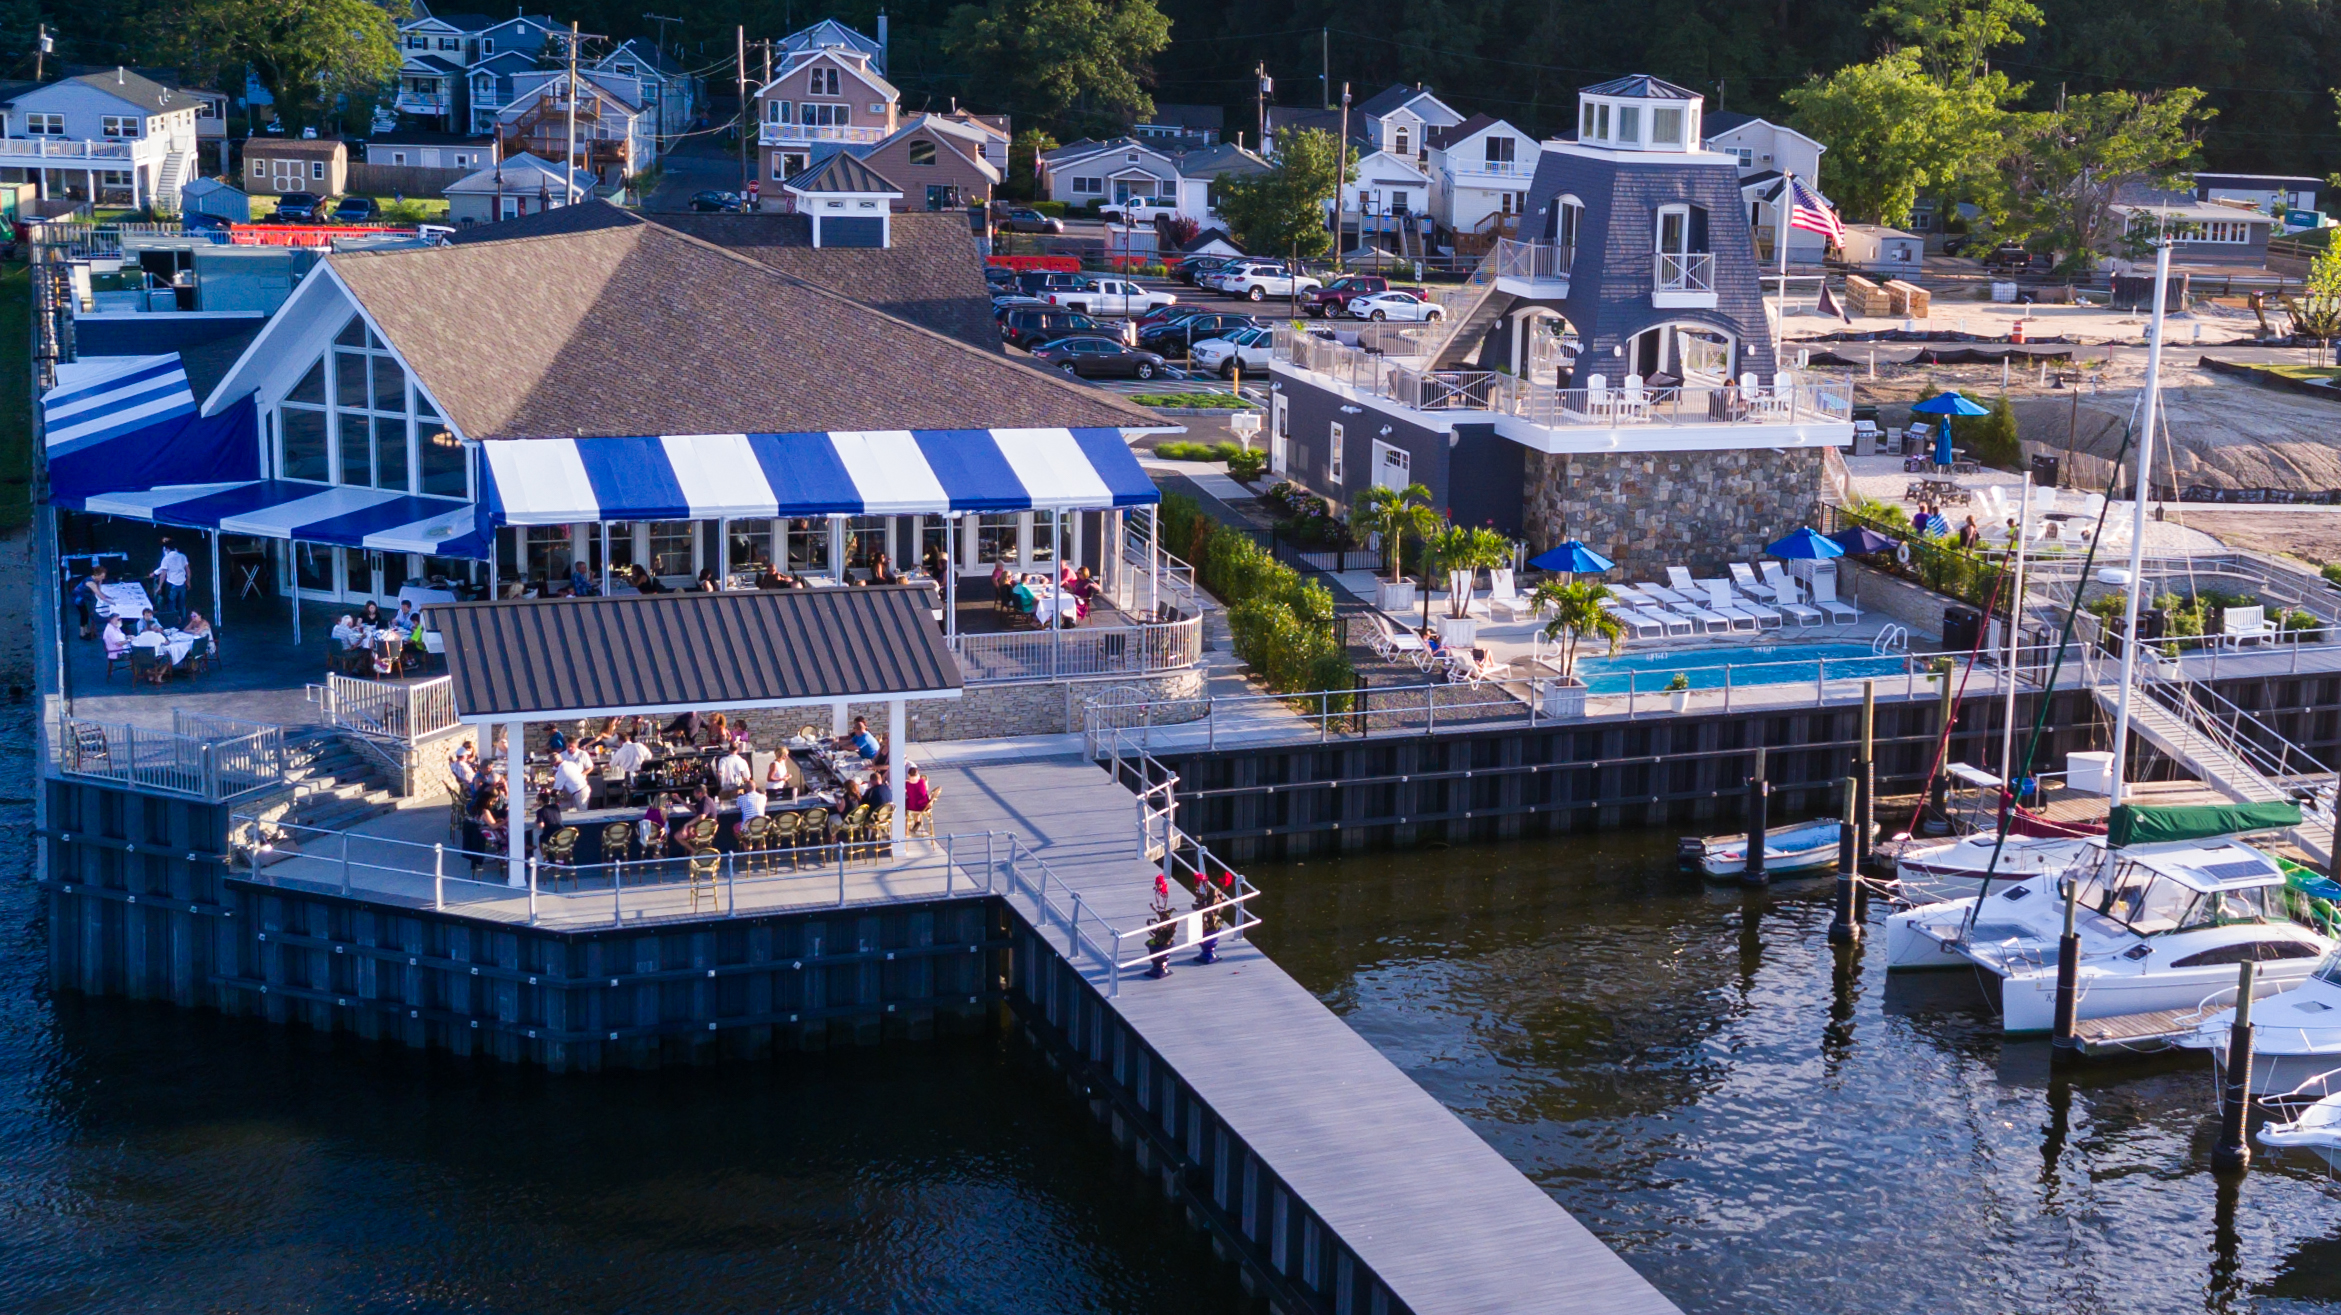 Dock & Dine at Trama's at One Willow!